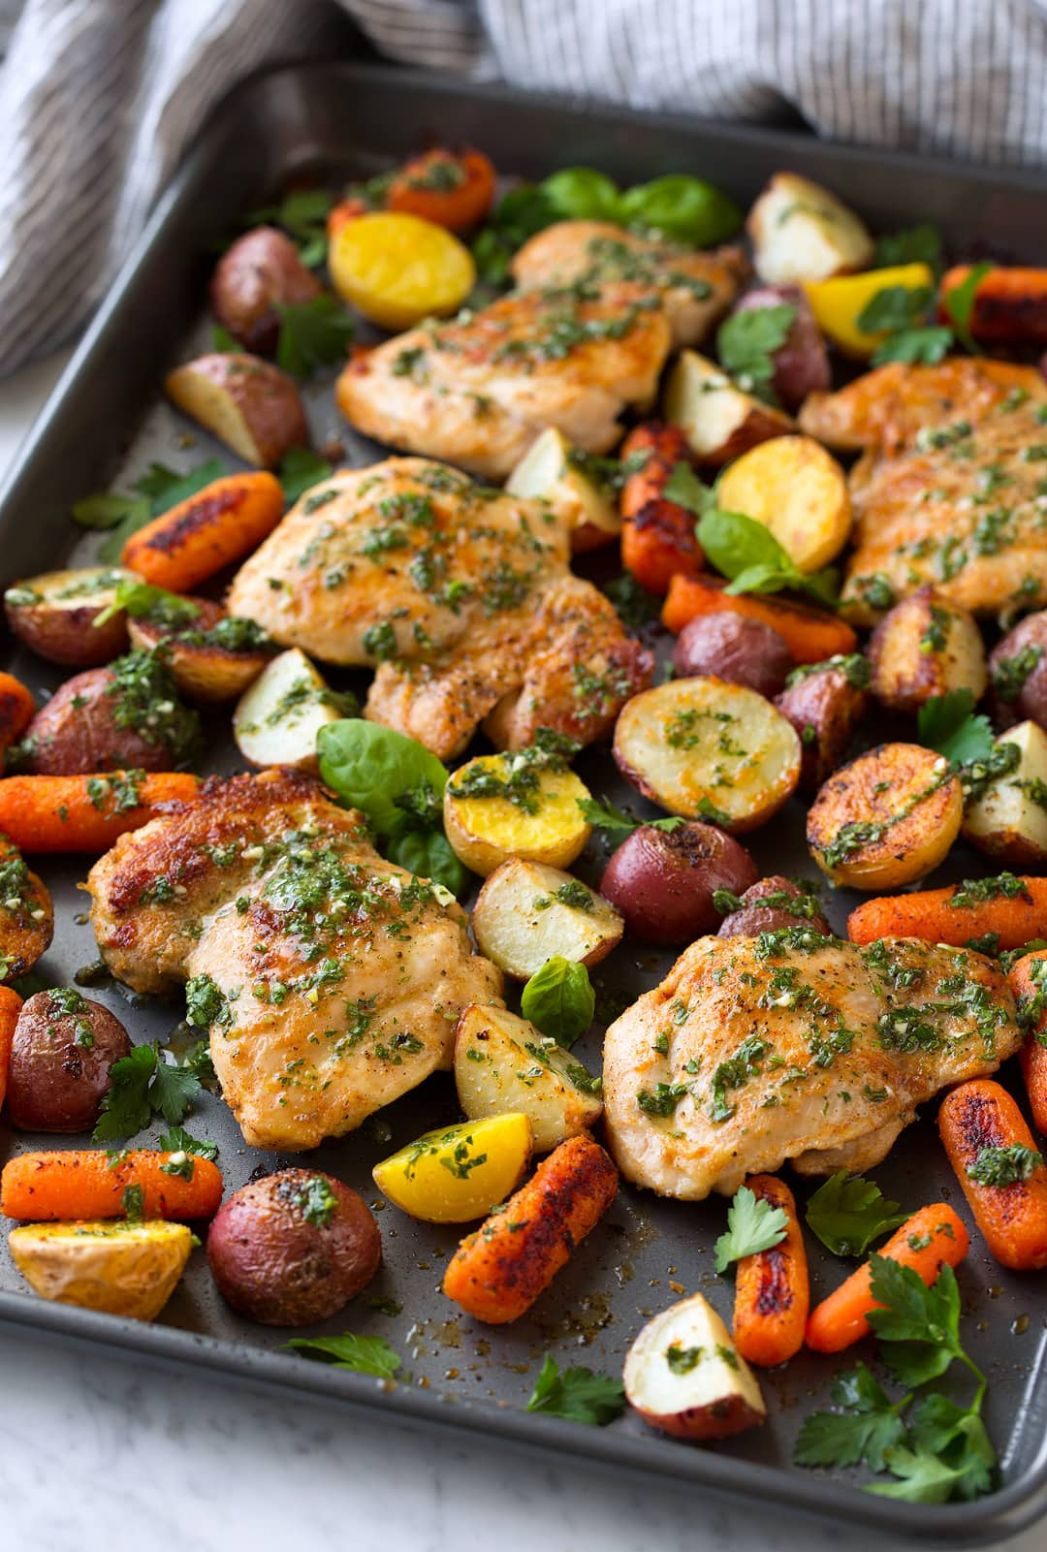 Roasted Chicken and Veggies with Garlic Herb Vinaigrette - Cooking ...